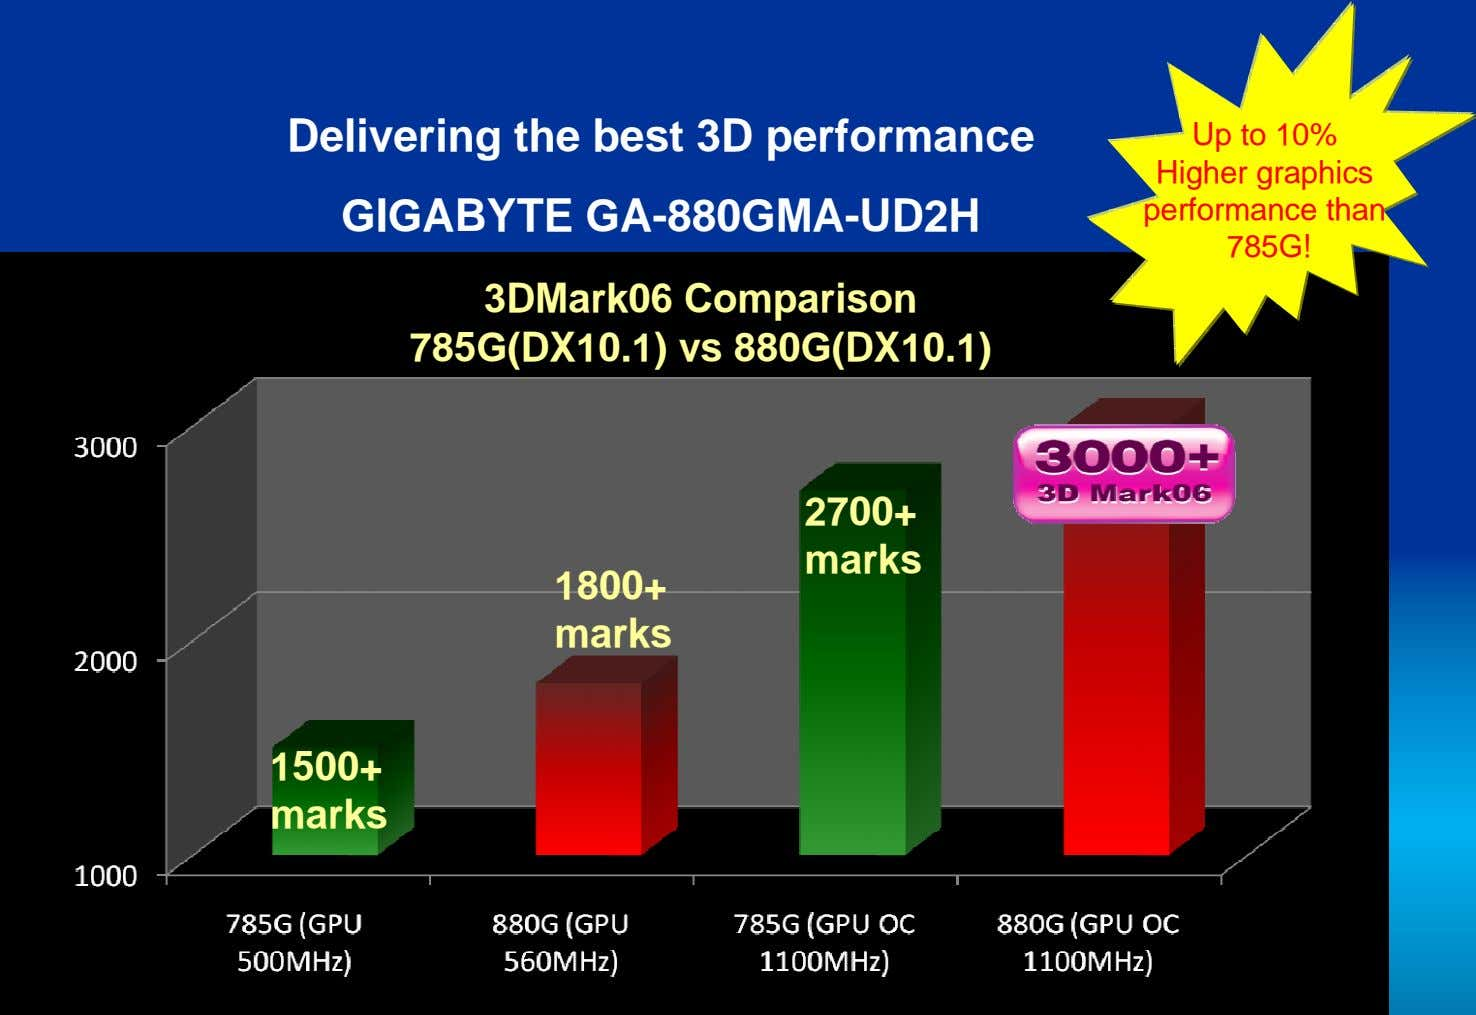 Delivering the best 3D performance GIGABYTE GA-880GMA-UD2H Up to 10% Higher graphics performance than 785G!